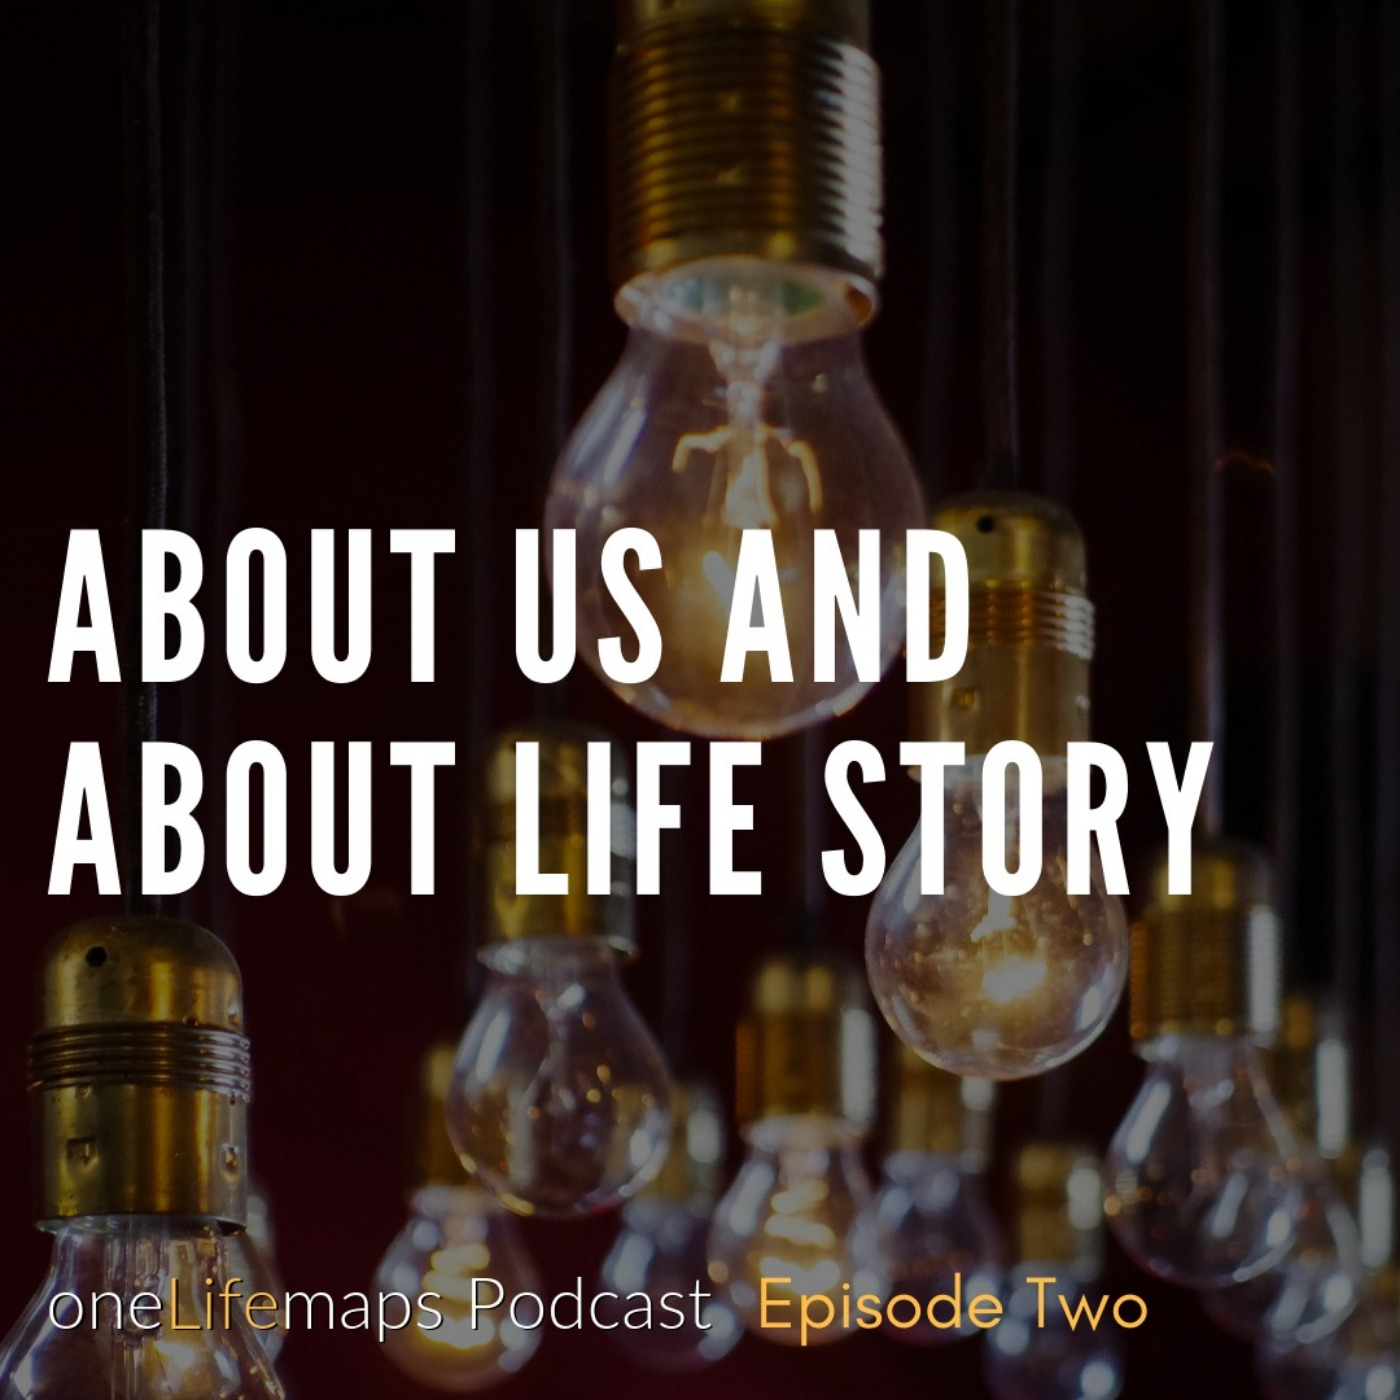 About Us and Life Story